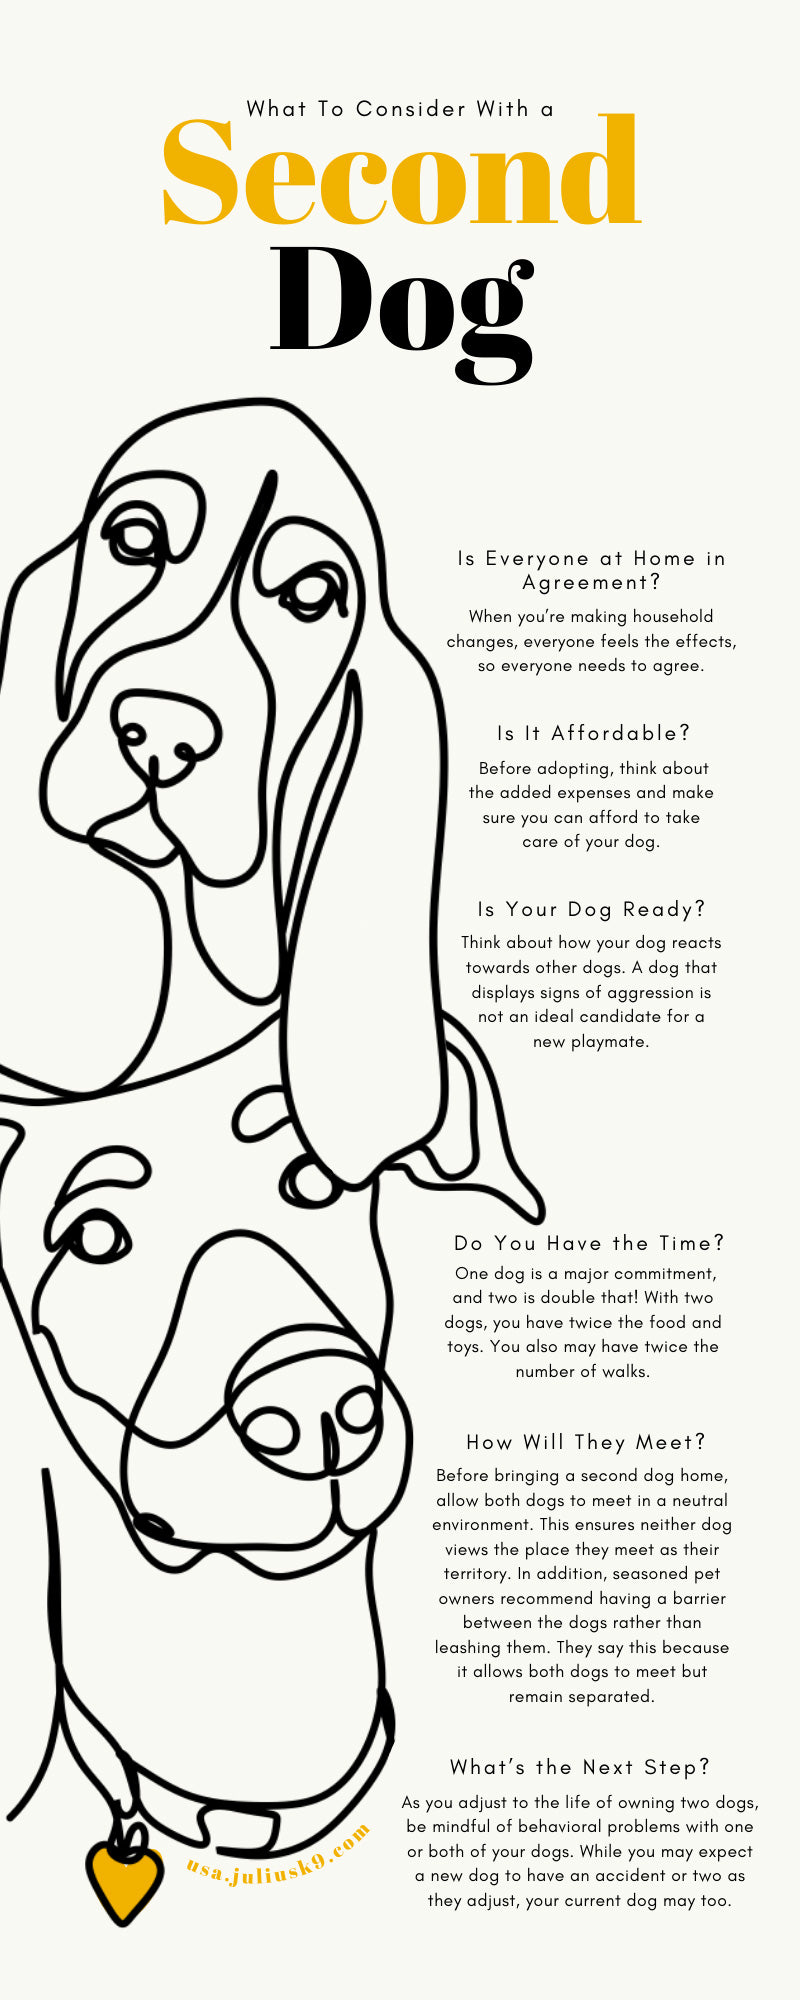 What To Consider With a Second Dog